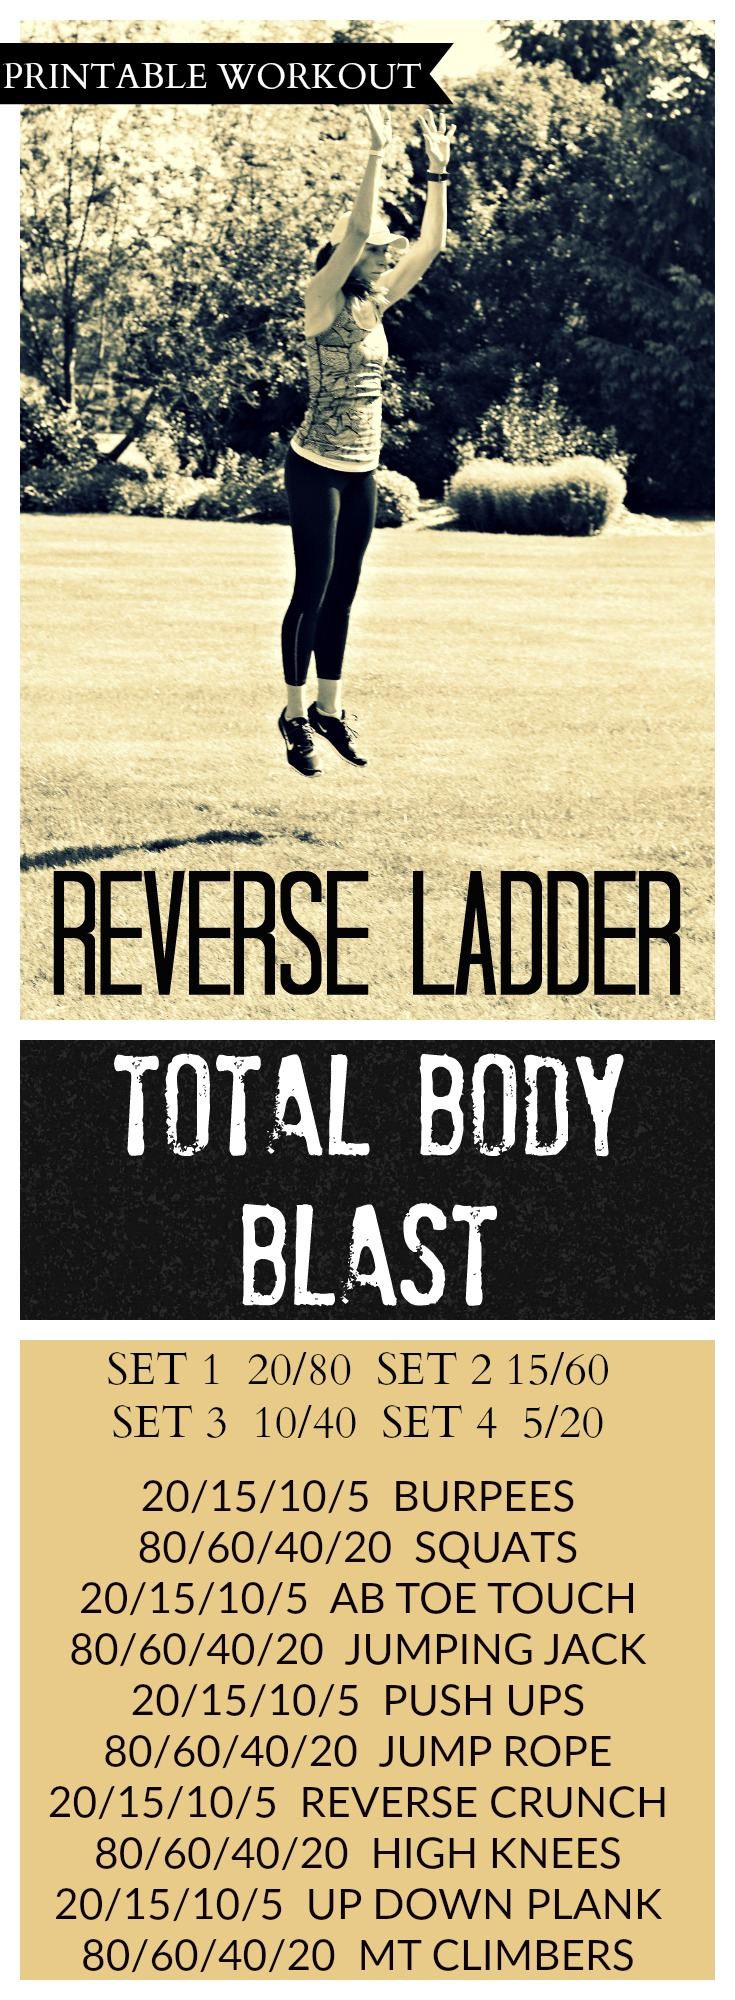 Reverse Ladder Total Body Blast Cardio Coffee And Kale